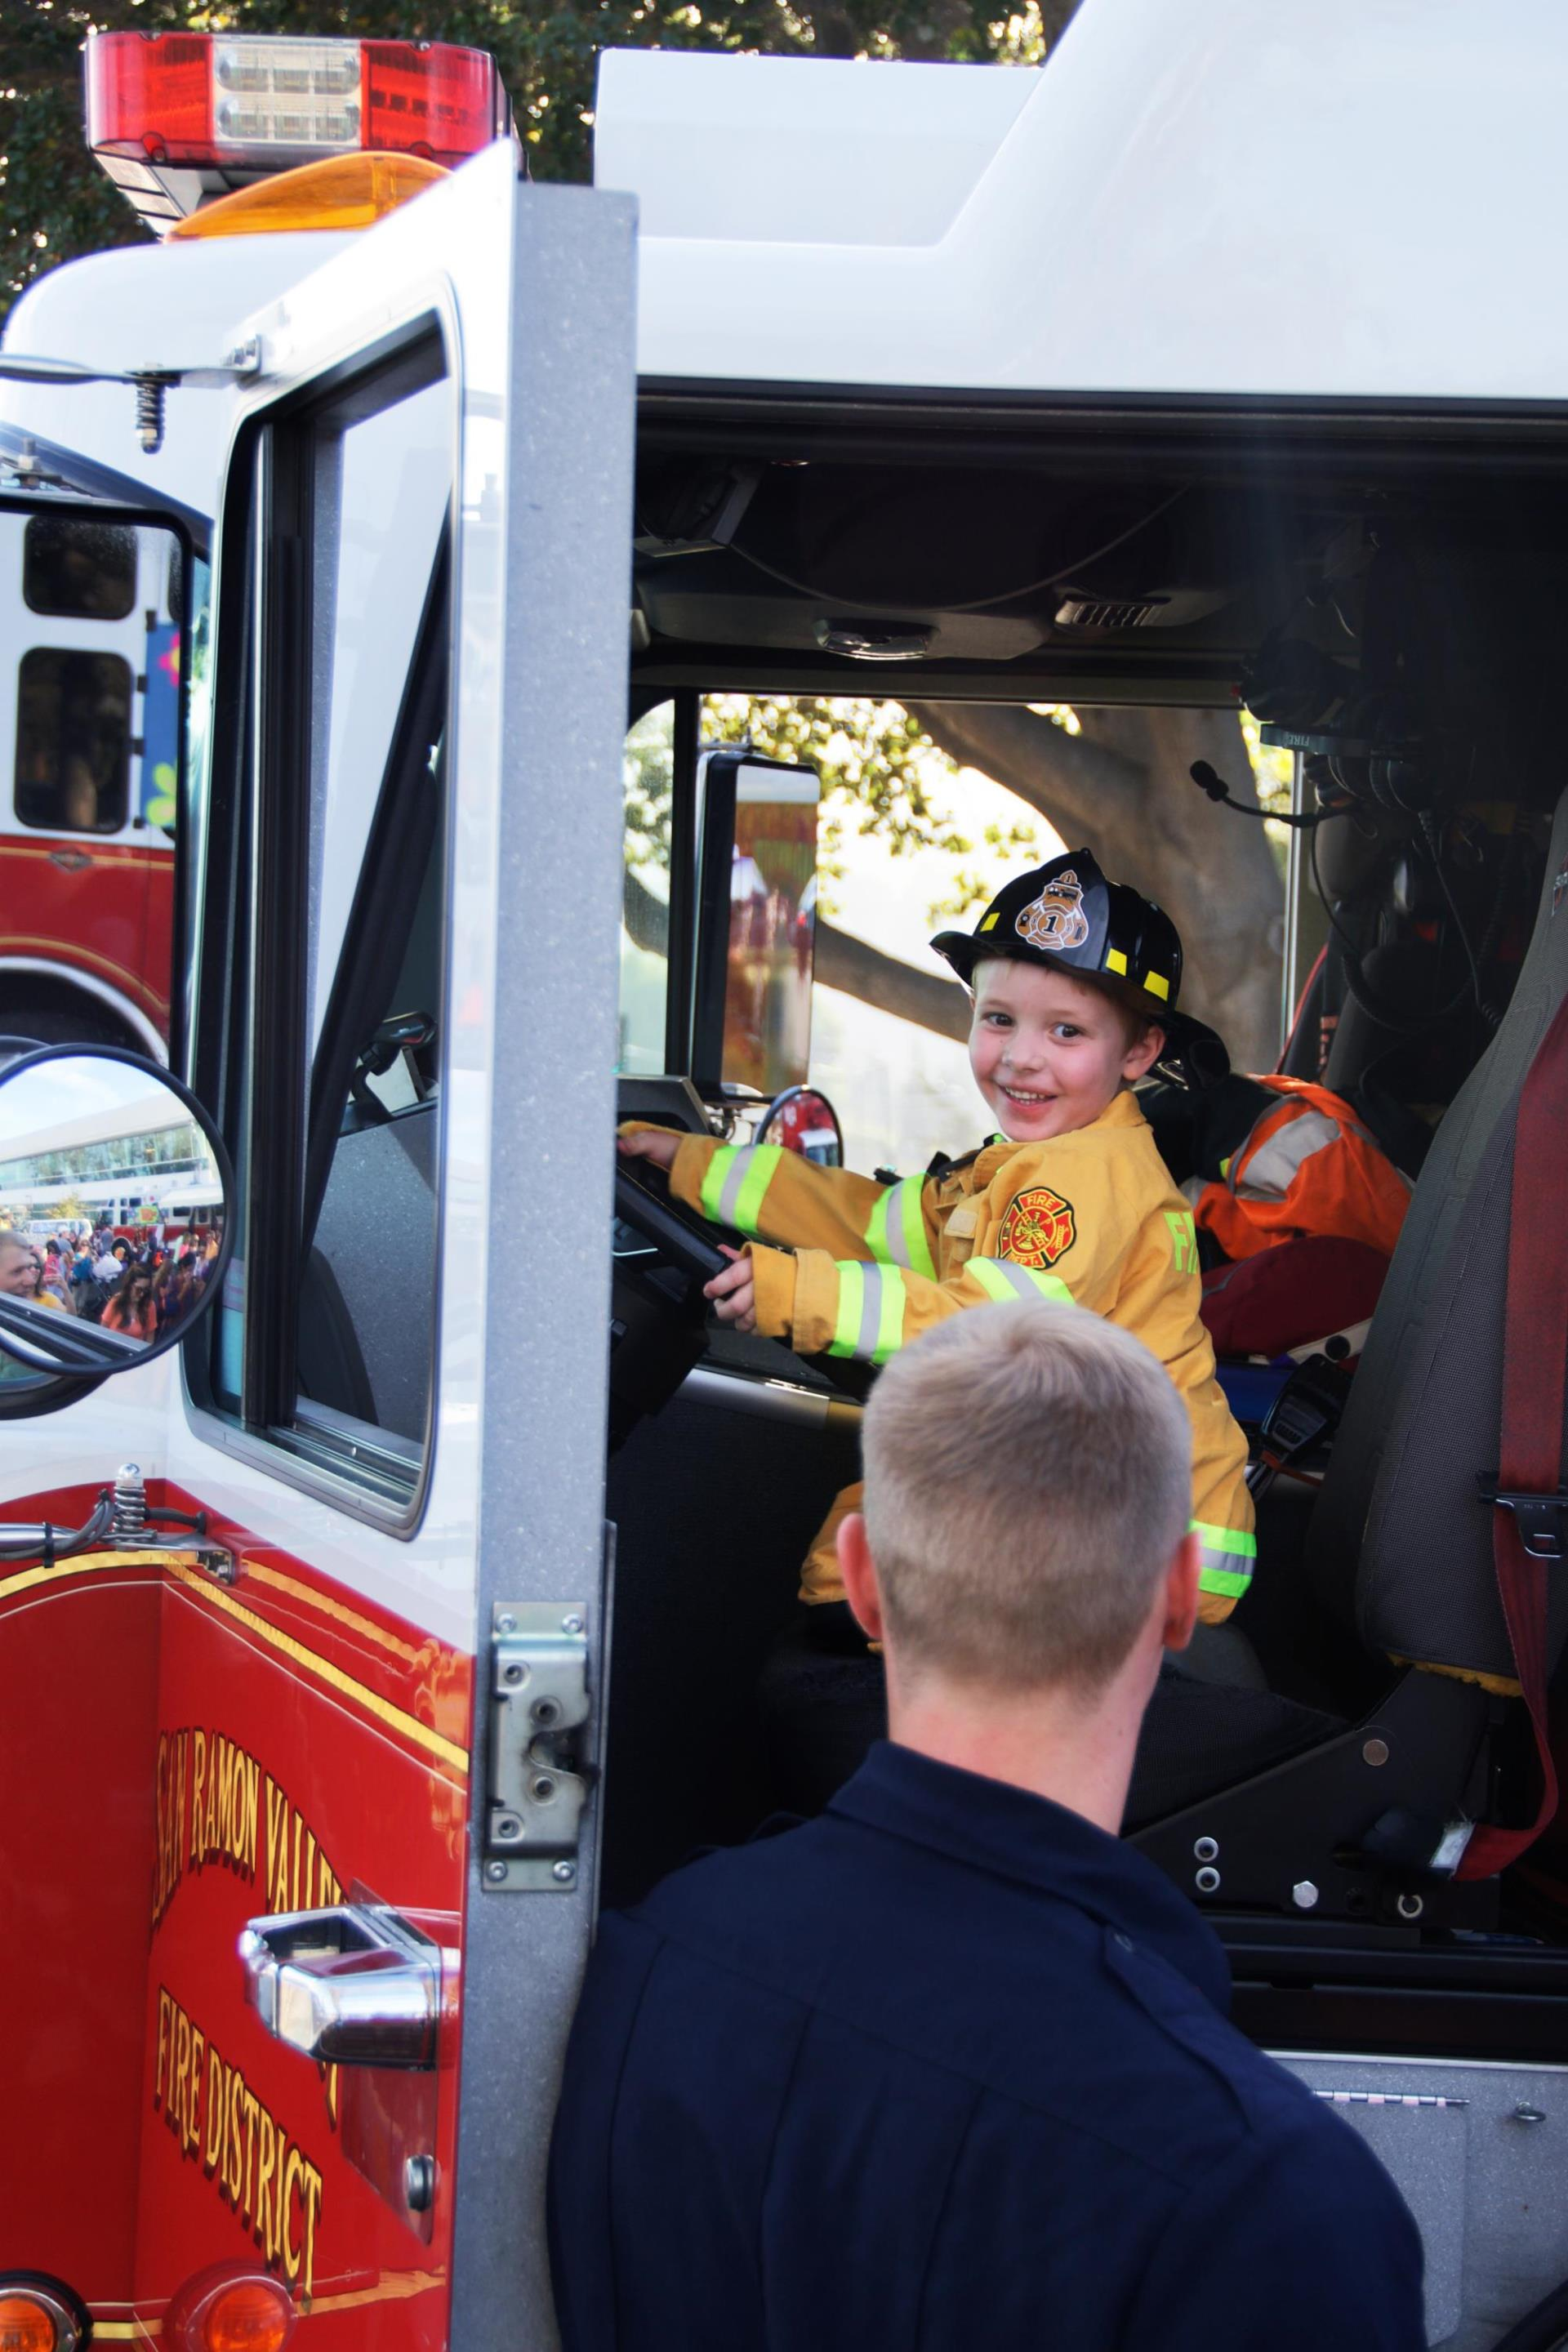 Kid dressed up as Firefighter in engine